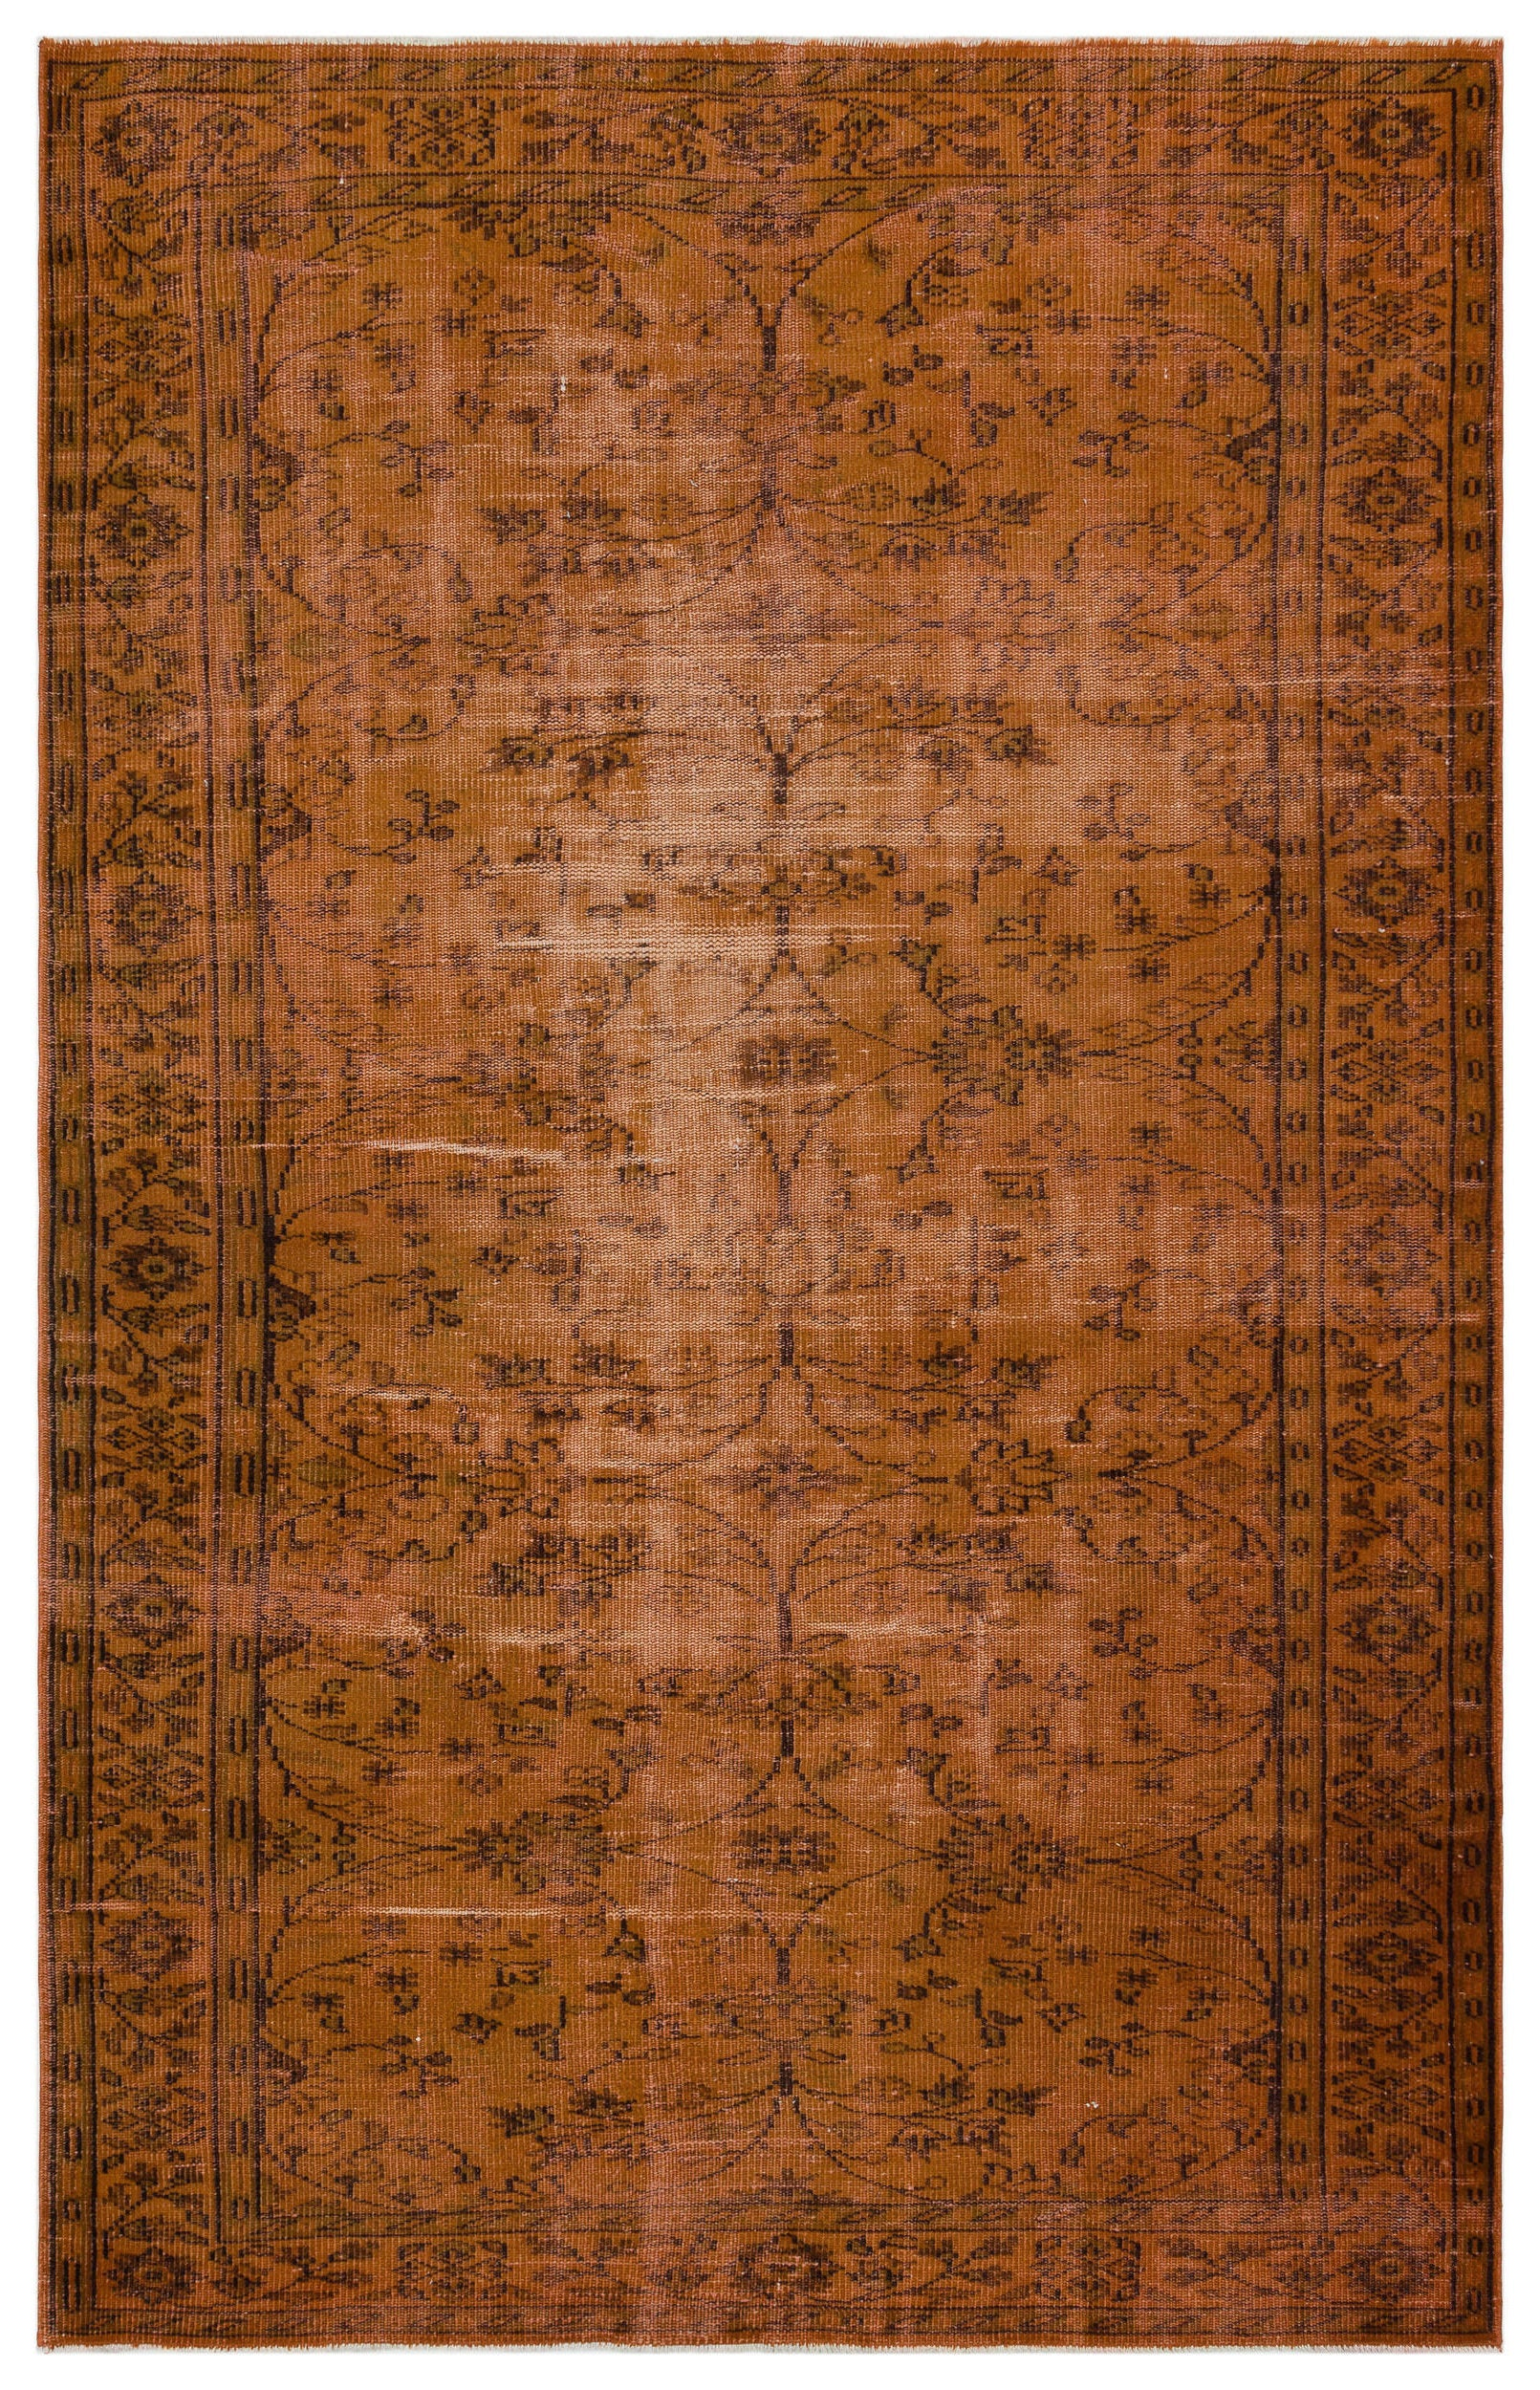 Brown Over Dyed Vintage Rug 5'10'' x 9'1'' ft 177 x 277 cm